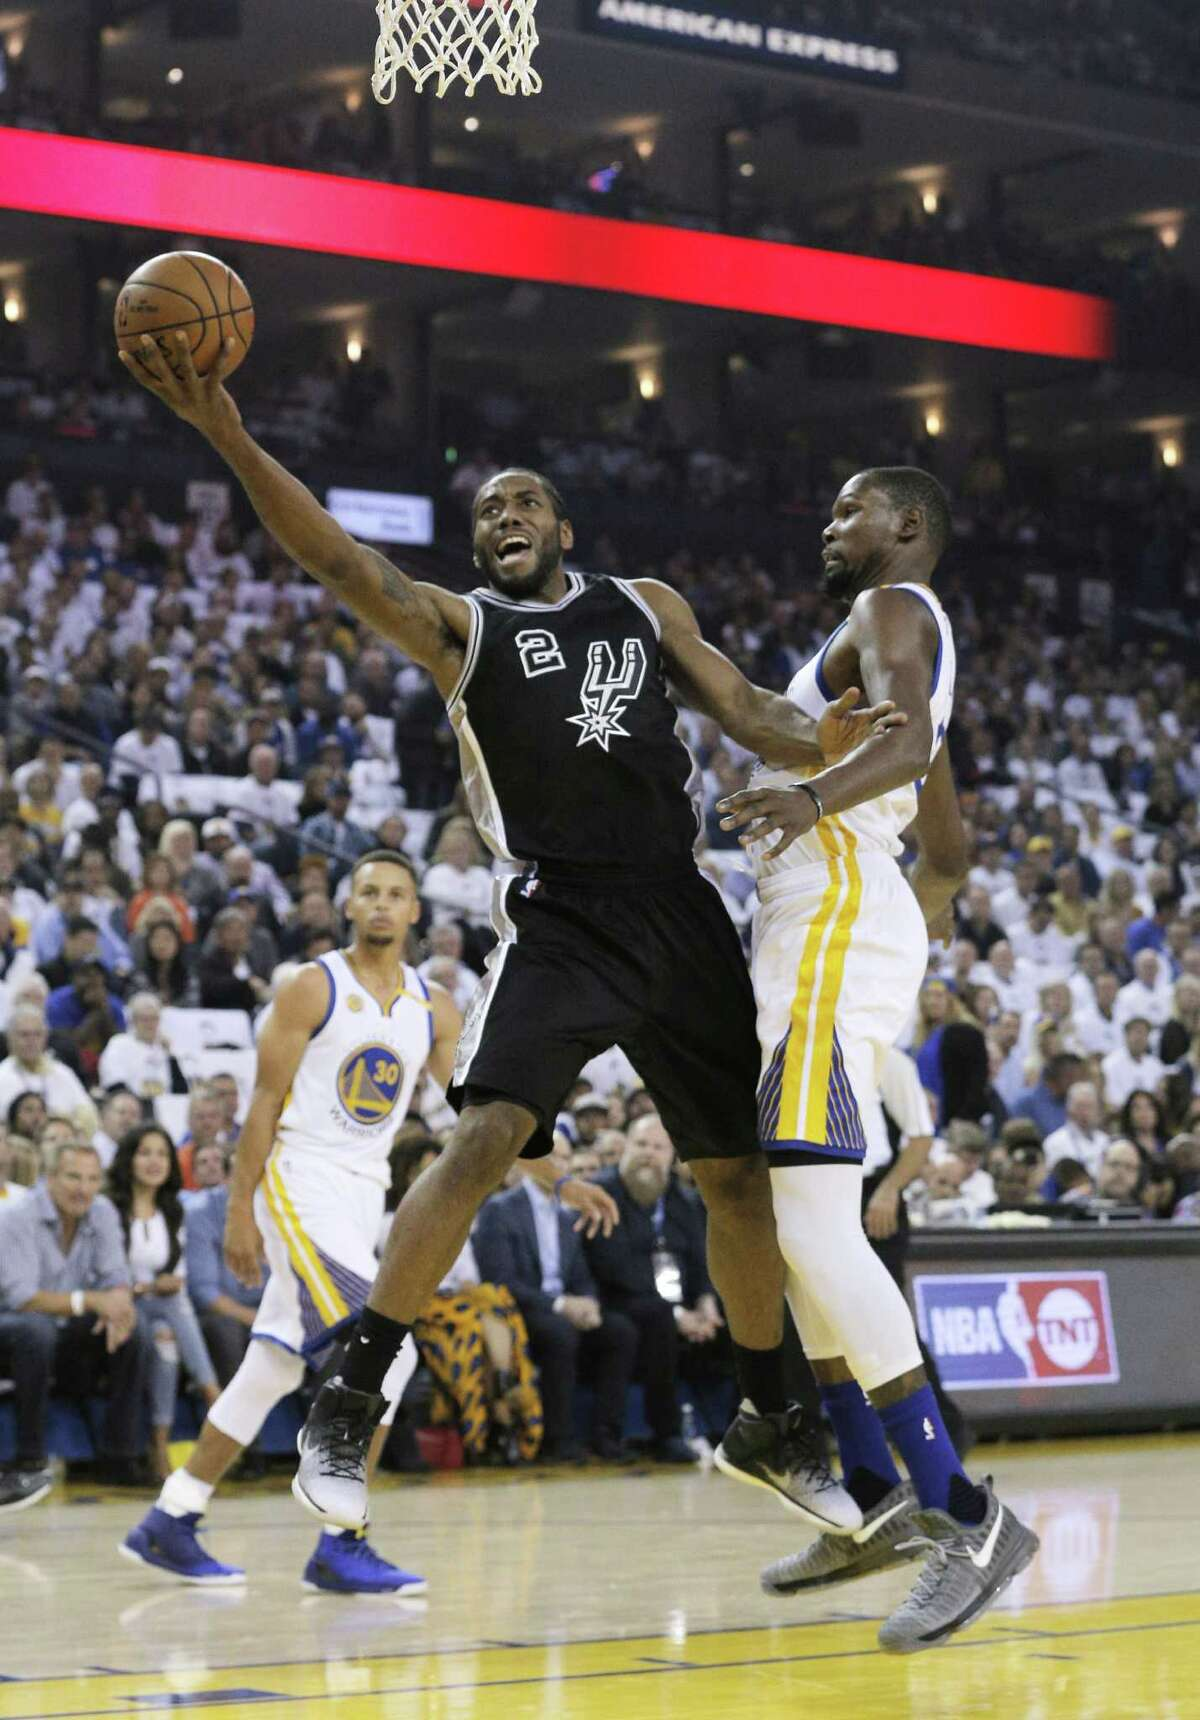 Kawhi Leonard (2) drives to the basket past Kevind Durant (35) in the first half as the Golden State Warriors played the San Antonio Spurs in their season opener at Oracle Arena in Oakland, Calif., on Tuesday, October 25, 2016.